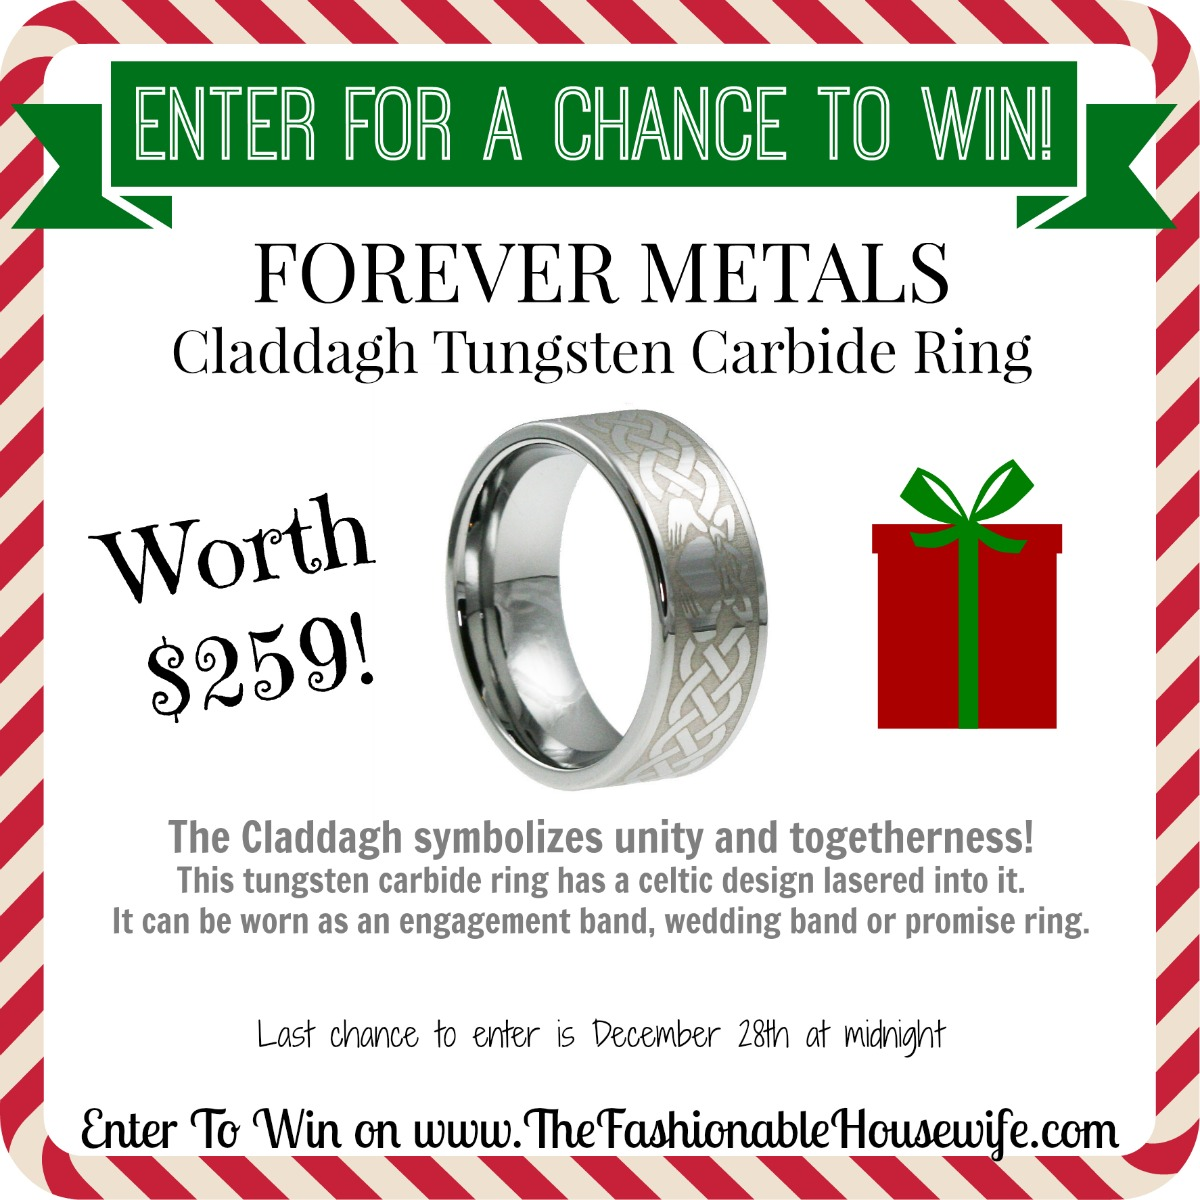 Win Wedding Bands 48 Simple Enter for a chance